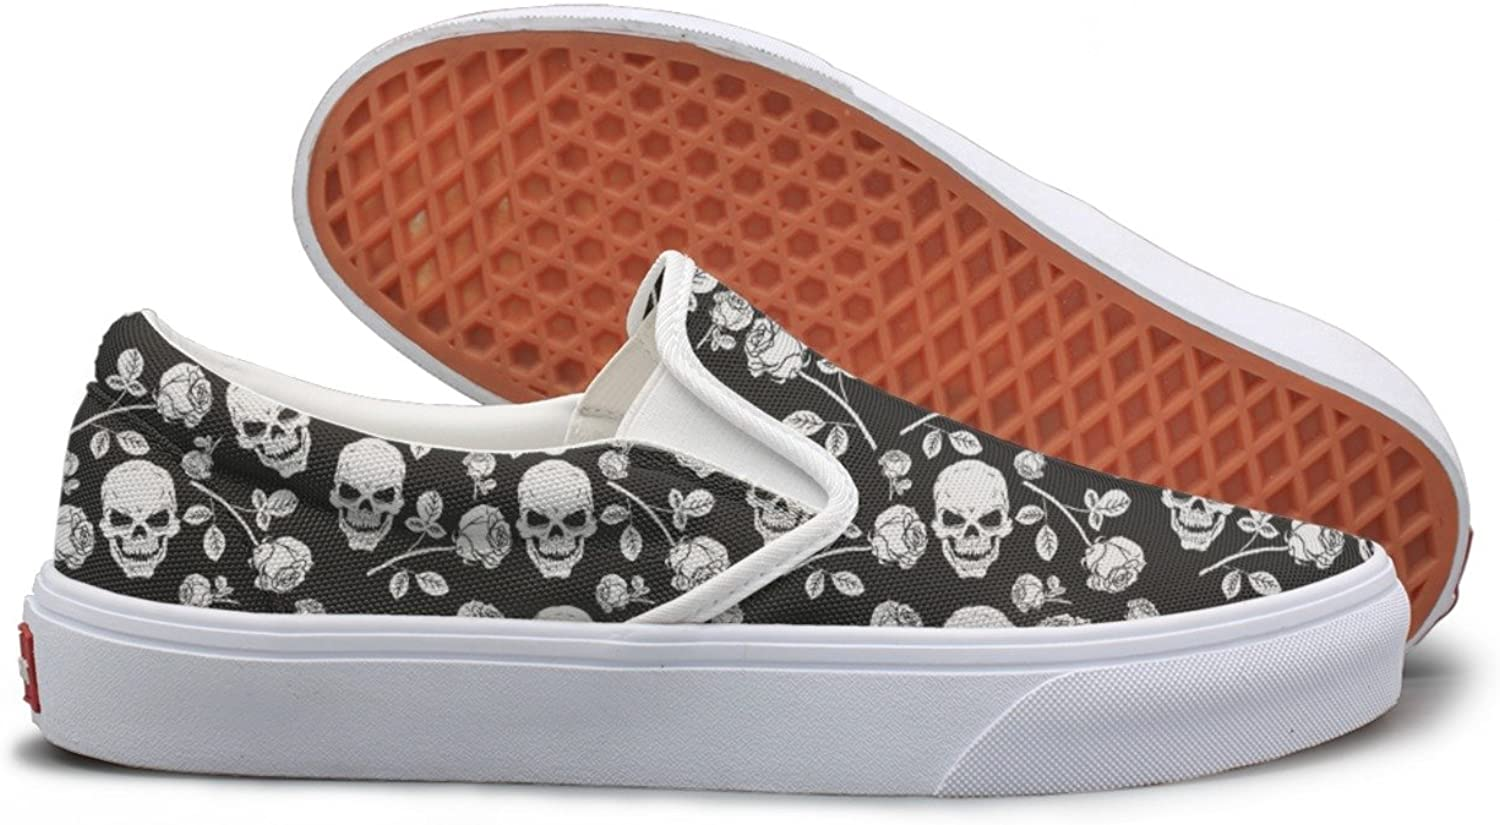 Skulls And pinks Top Sneakers For Women